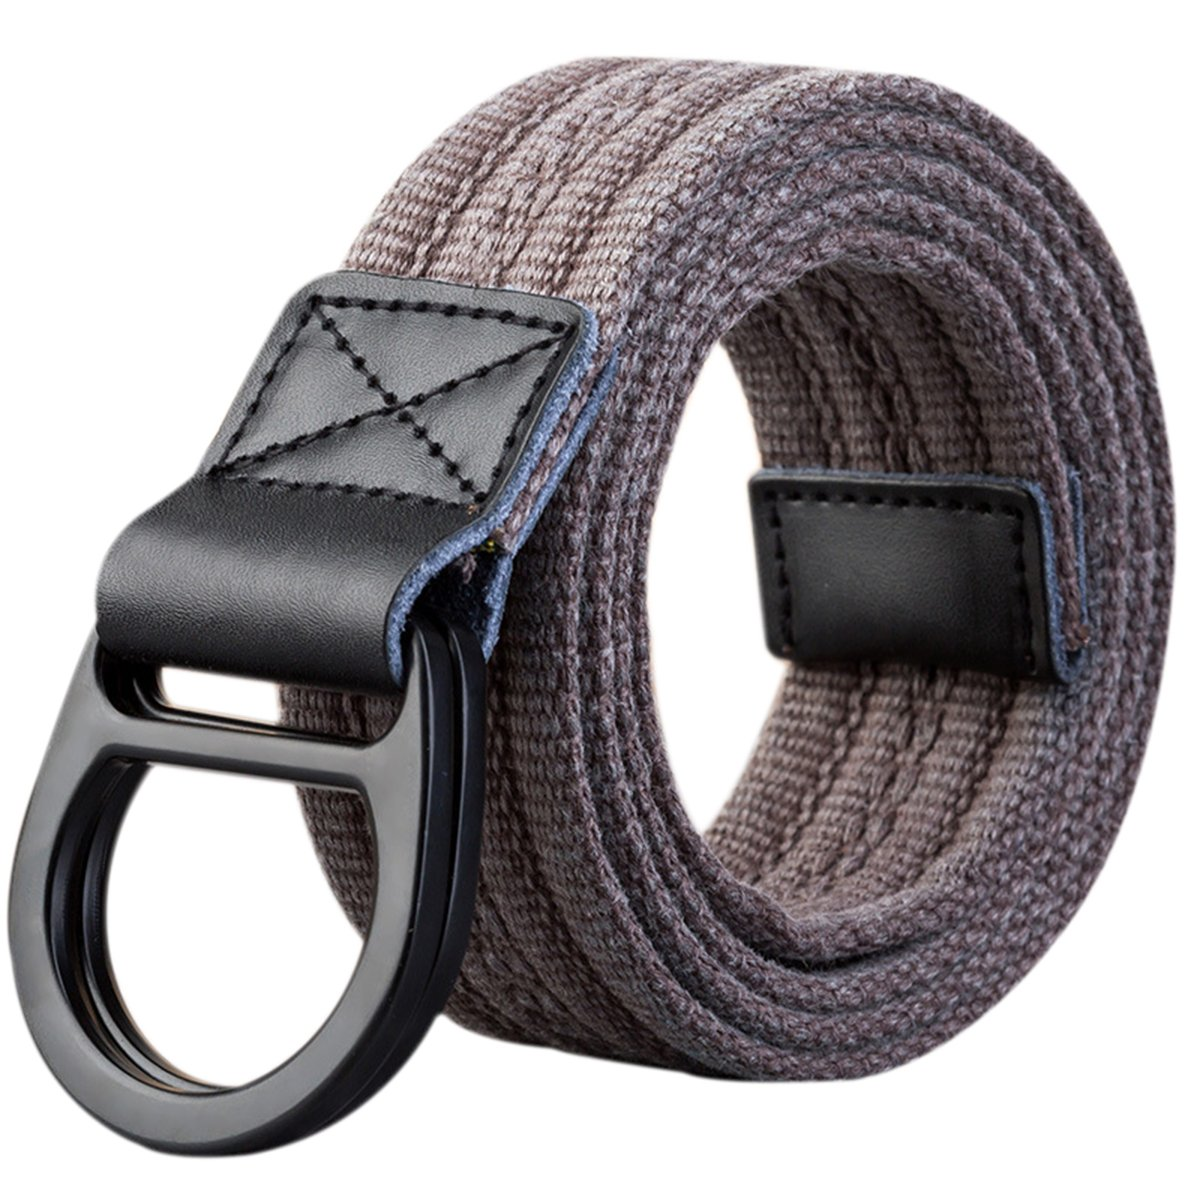 ITIEZY Men Canvas Web Belt Black D-ring Buckle Military 1 1 2 Father s Day  Gifts at Amazon Men s Clothing store  24753f11dc7